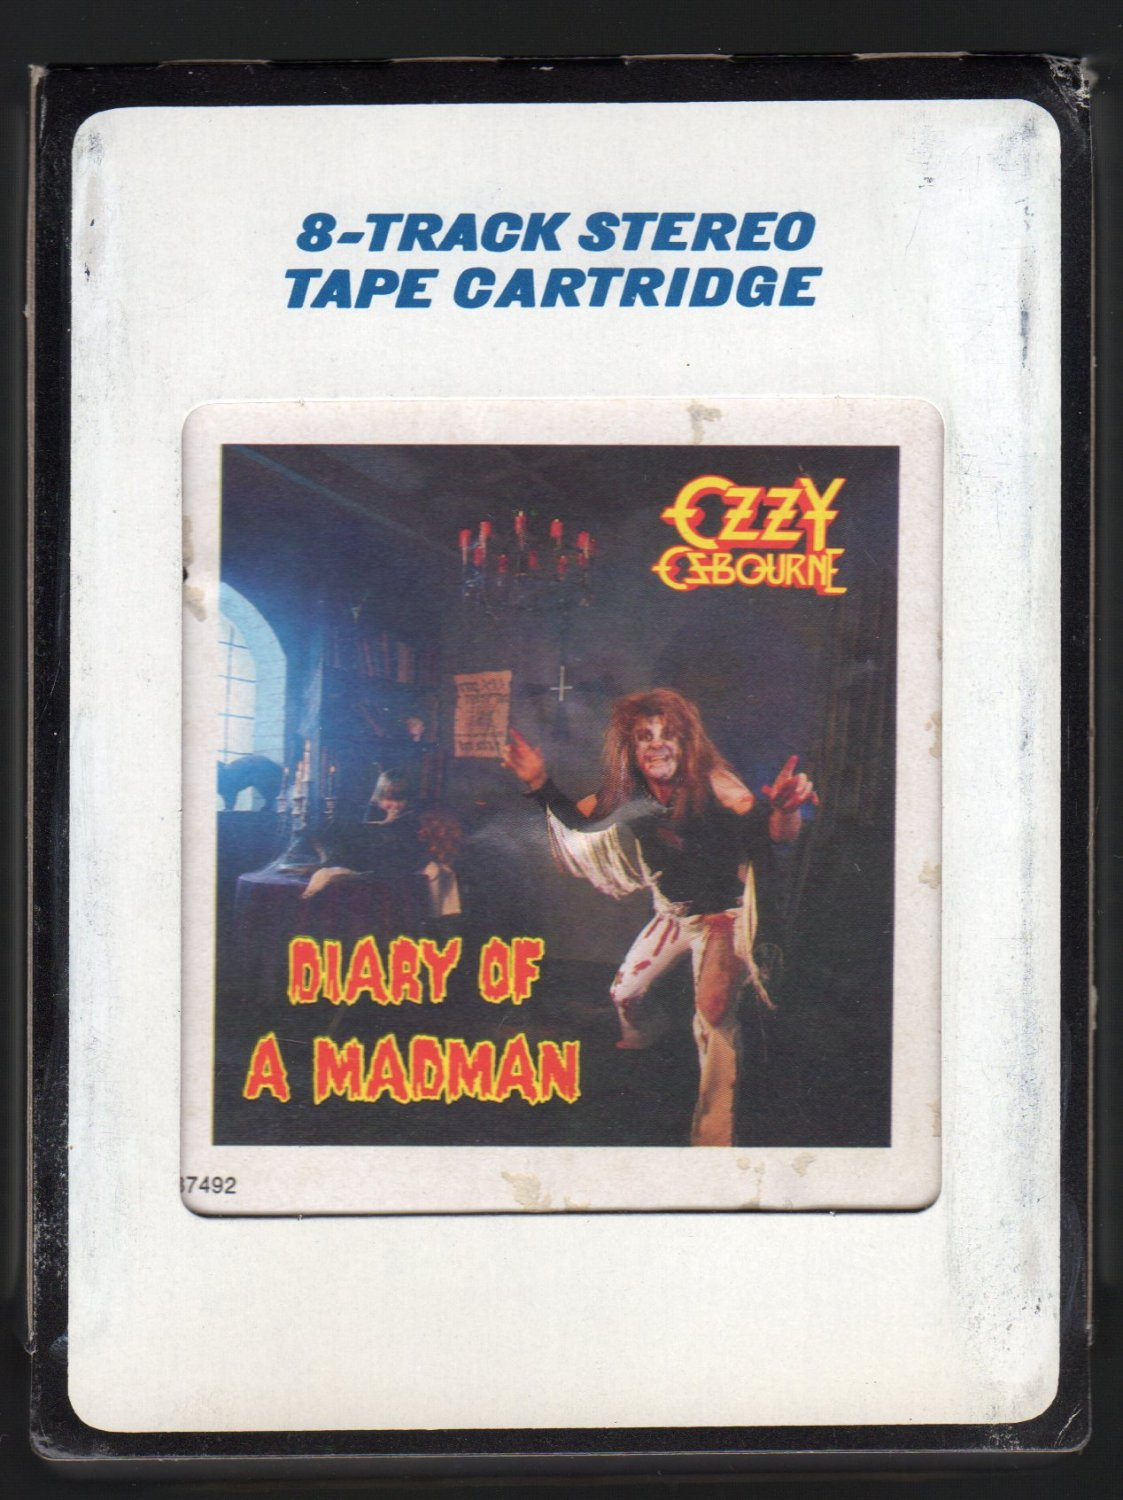 Ozzy Osbourne - Diary Of A Madman 1981 CRC JET A4 8-TRACK TAPE